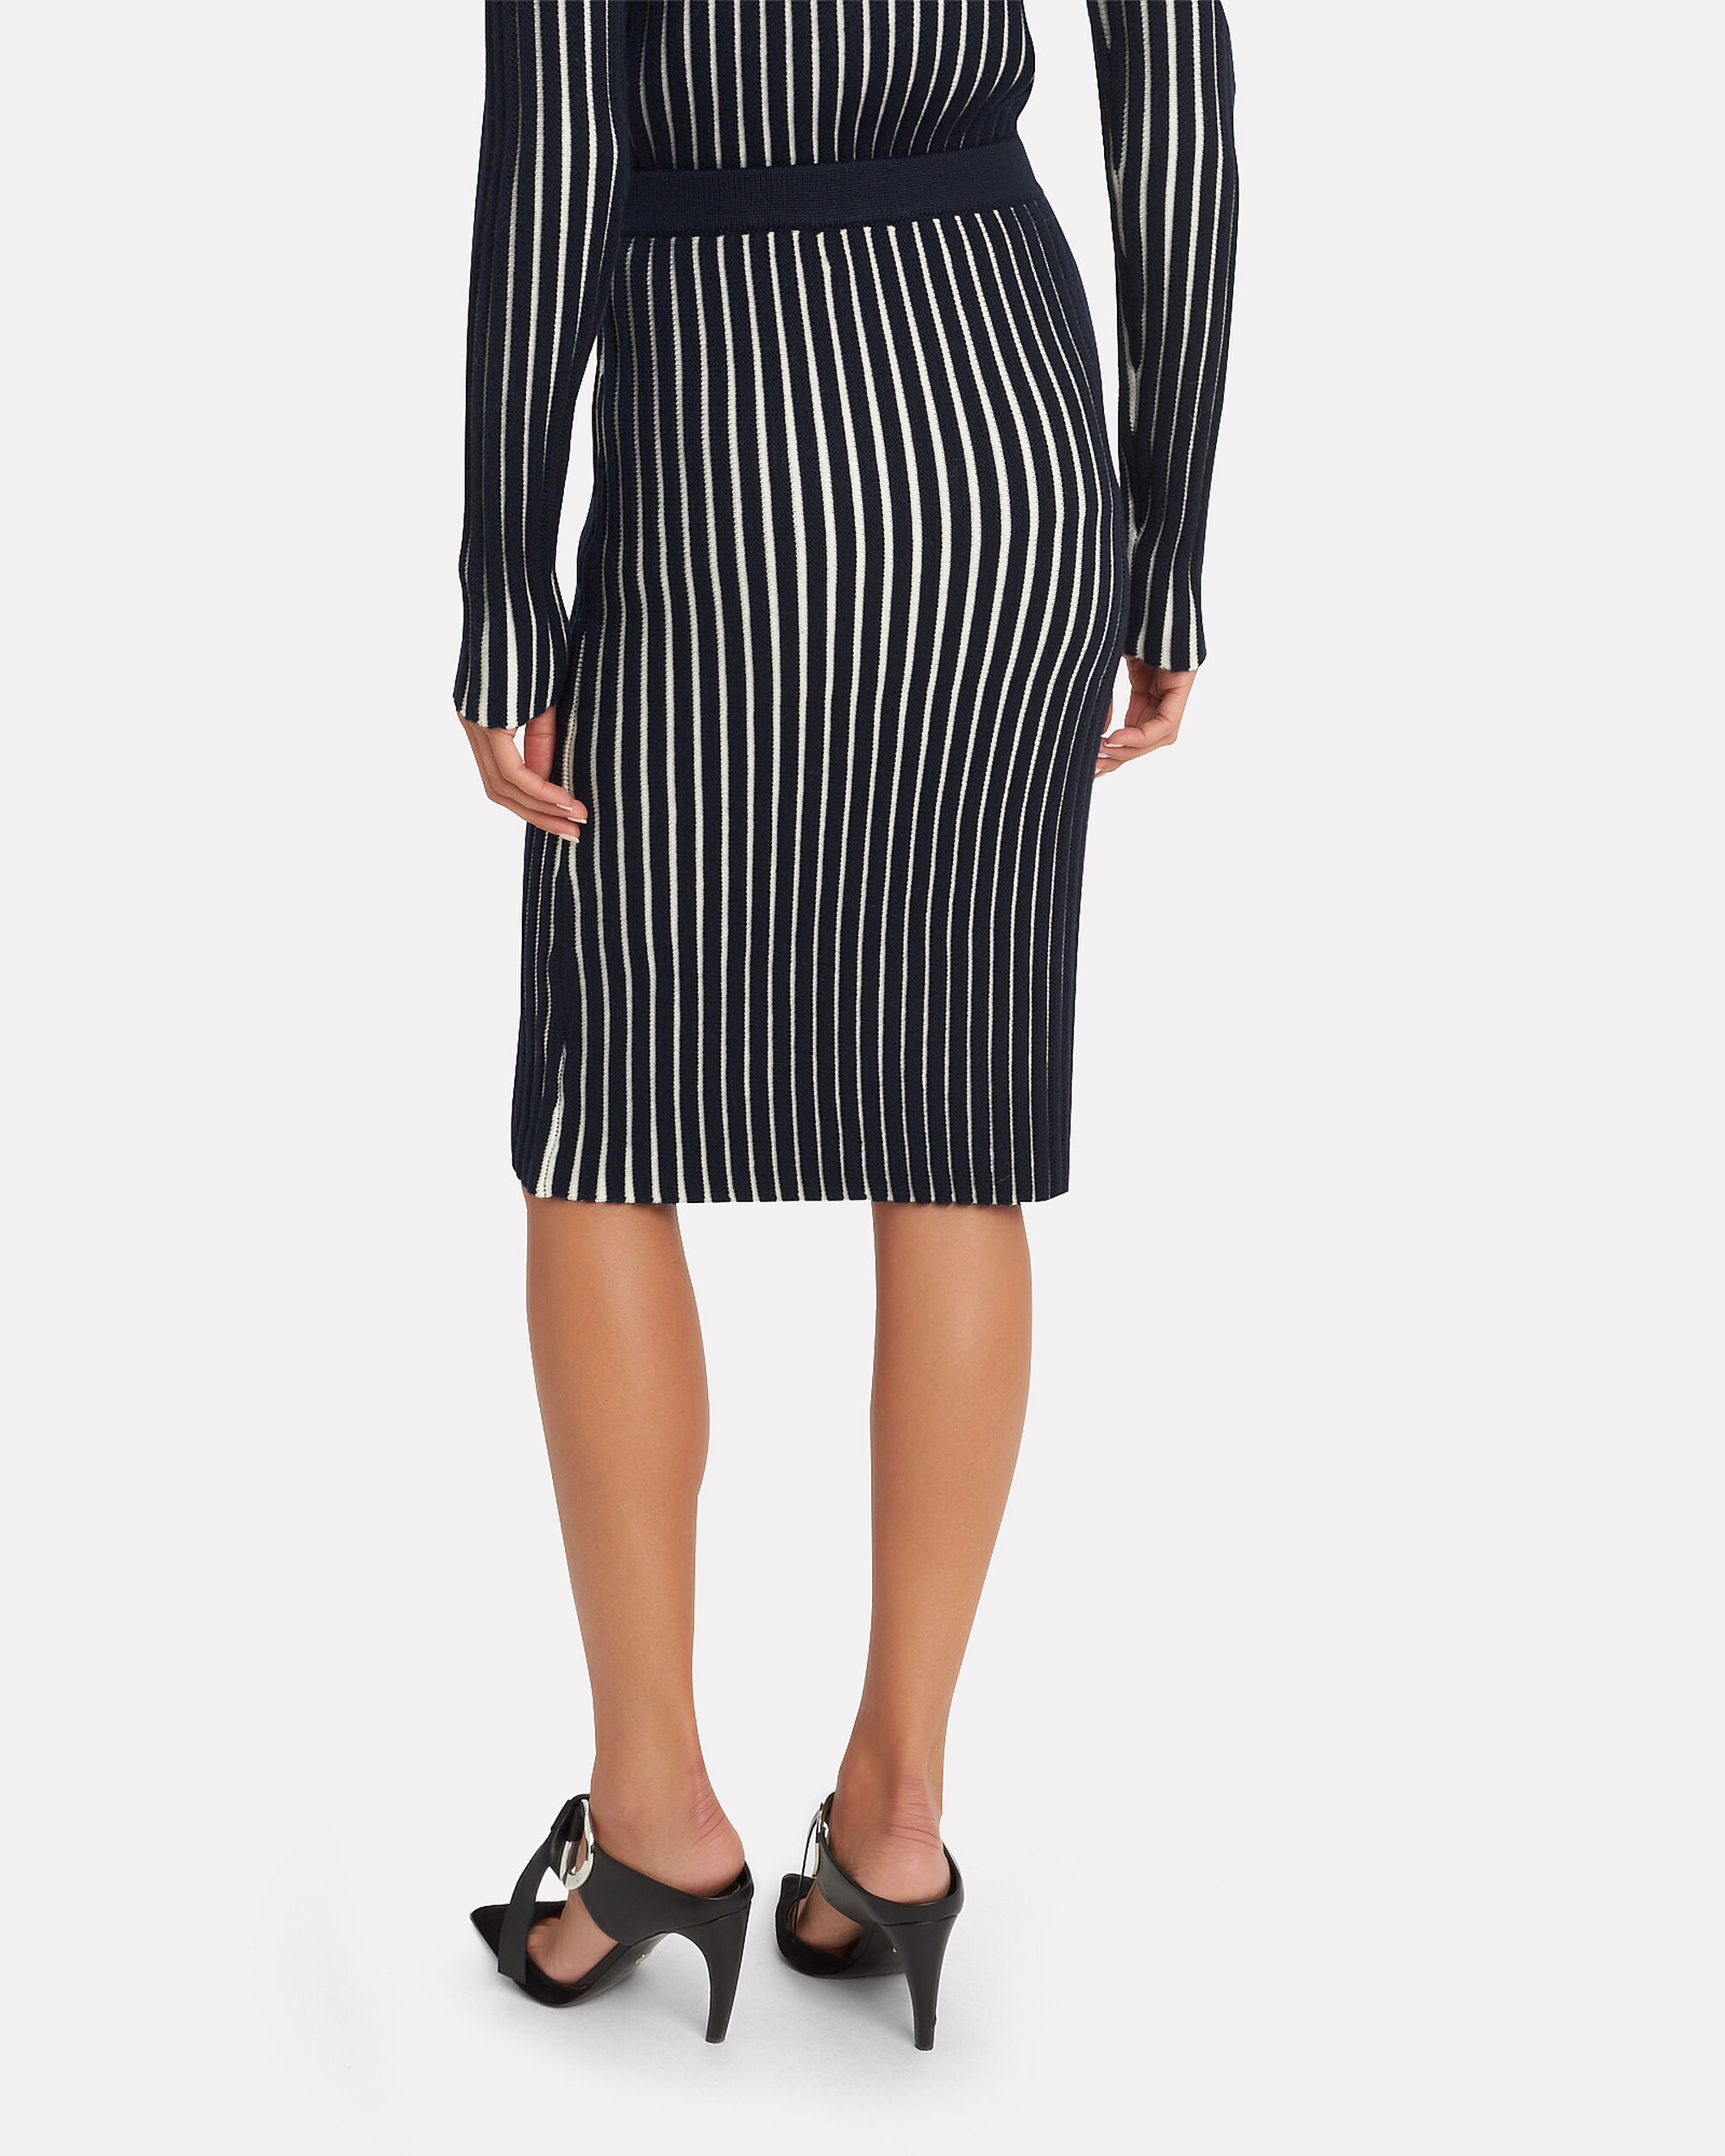 Striped Knit Skirt, NAVY, hi-res